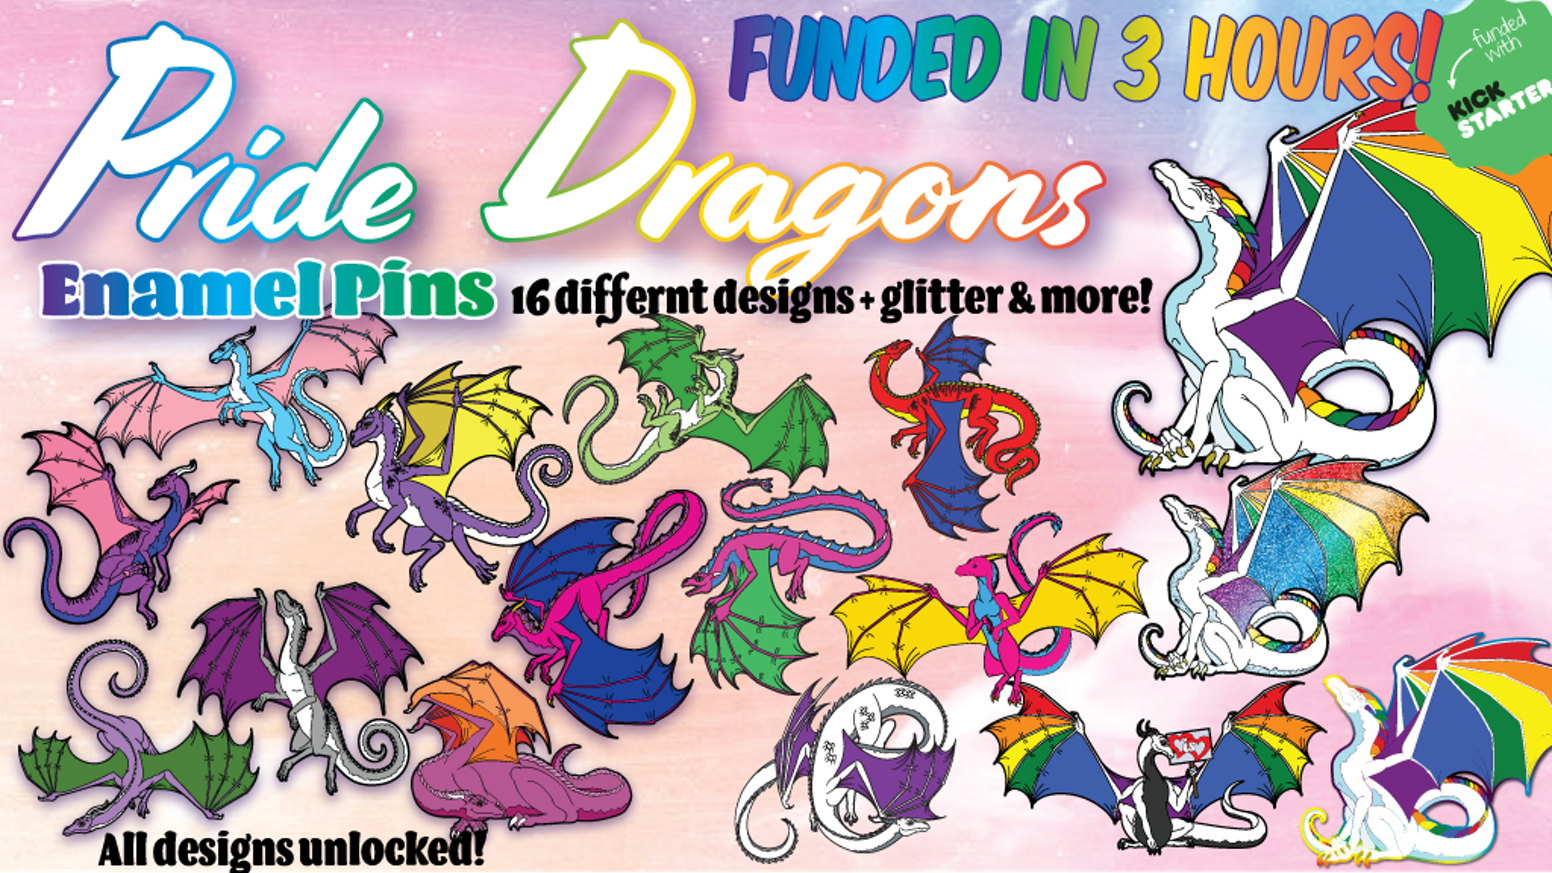 Cute dragon enamel pins & charms based off the LGBTQ Flags for Pride Month. Your choice of Soft or Hard enamel! 16 different designs!!